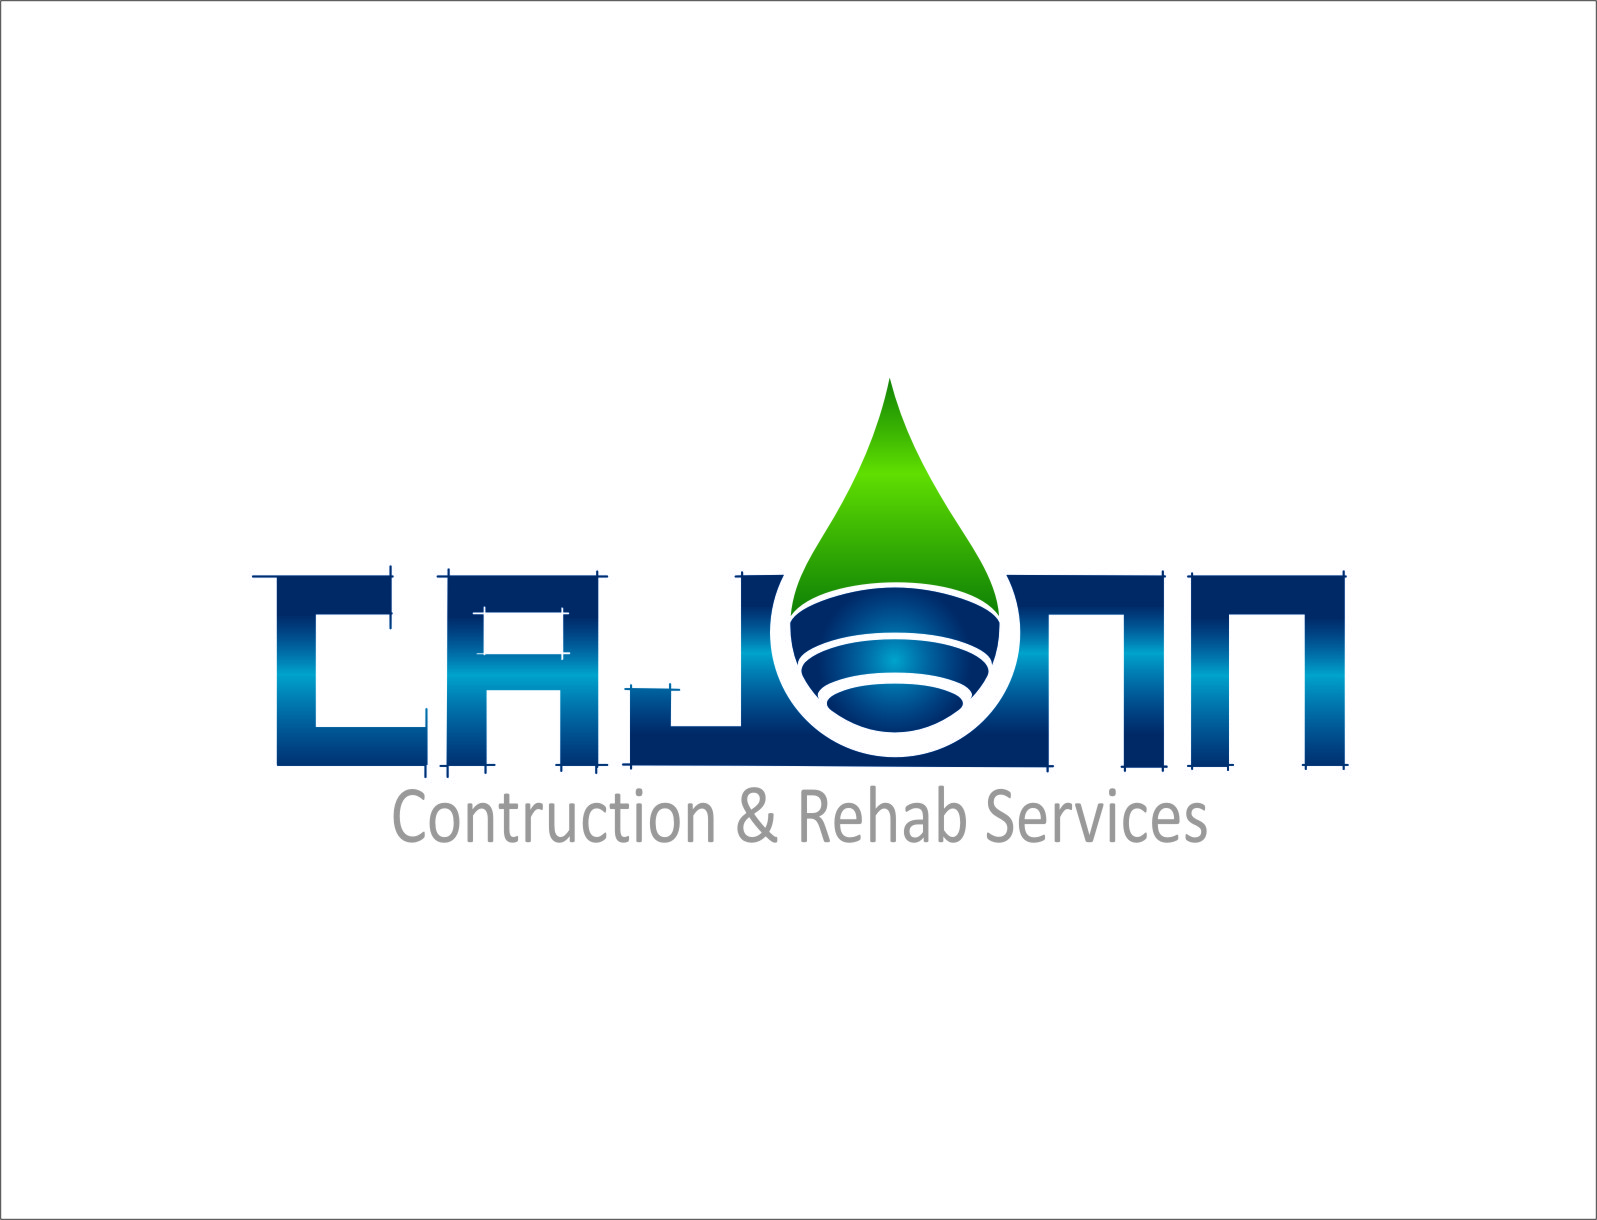 Logo Design by Ngepet_art - Entry No. 26 in the Logo Design Contest New Logo Design for CaJenn Construction & Rehab Services.